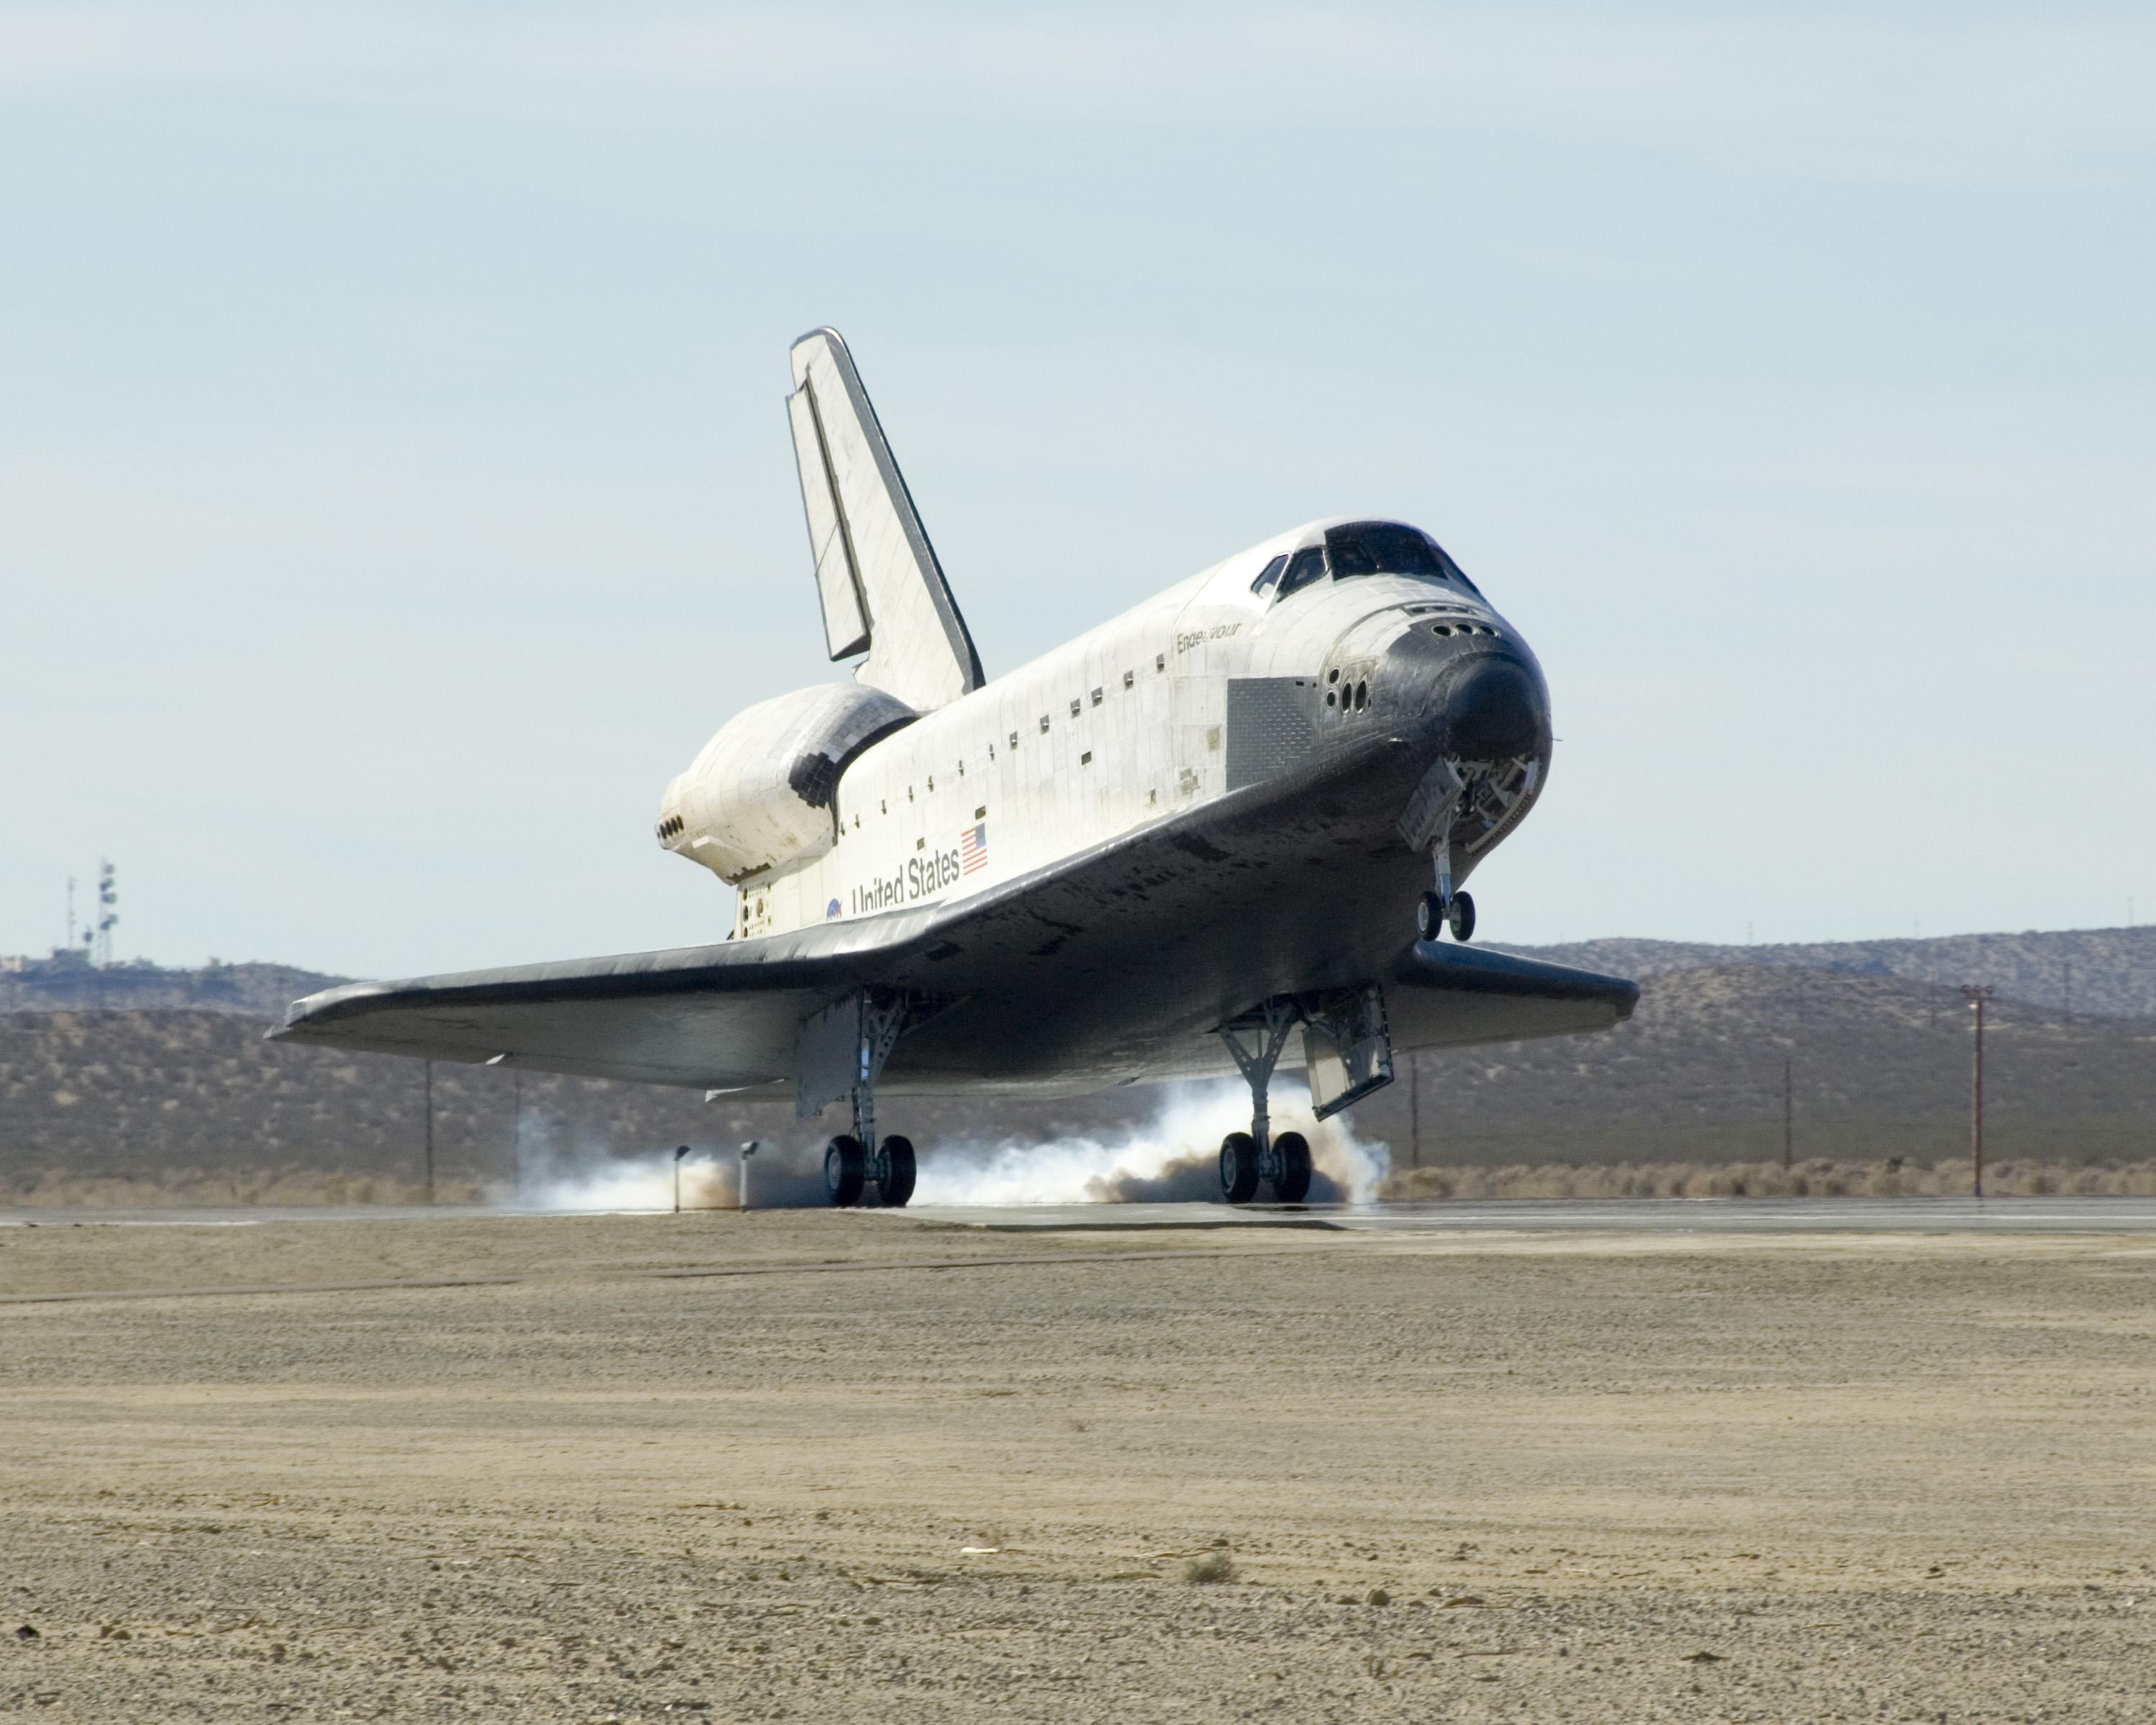 space shuttle speed - photo #18